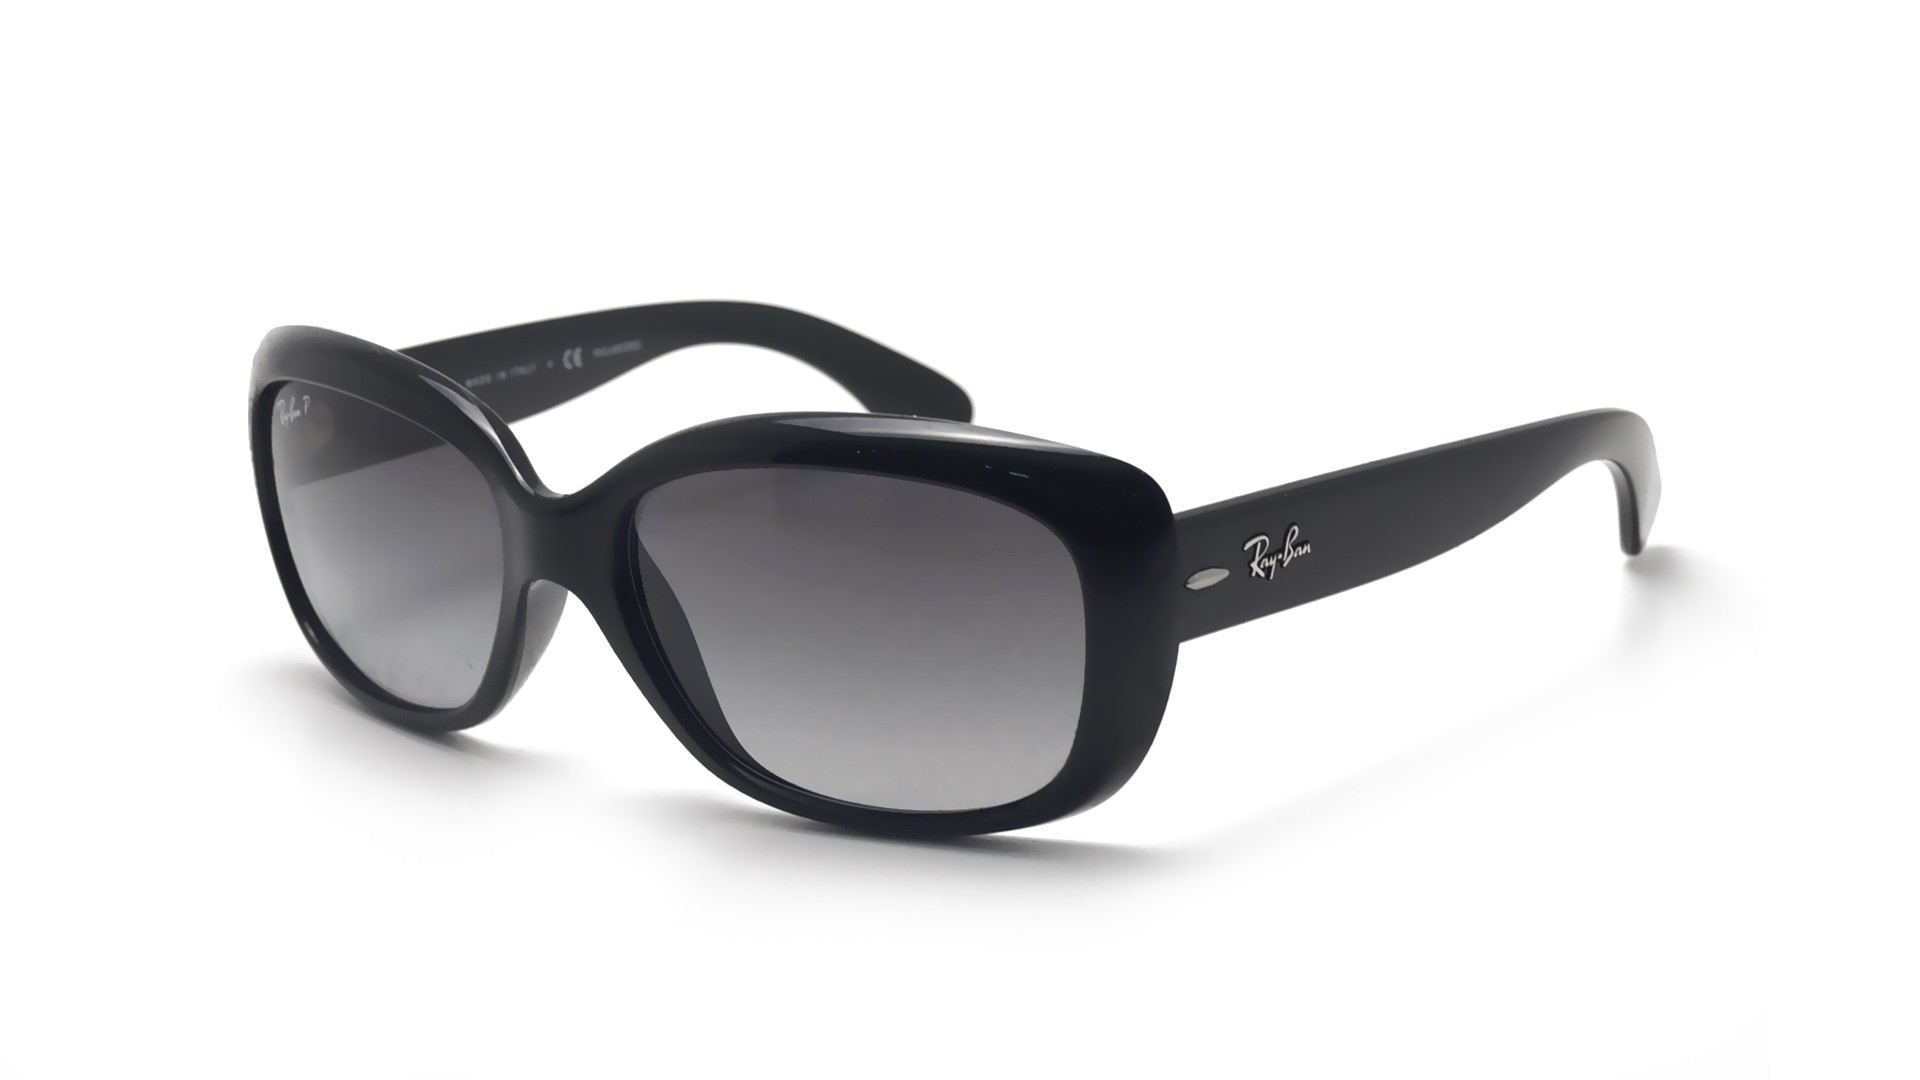 d0ad269f9bb Sunglasses Ray-Ban Jackie Ohh Black RB4101 601 T3 58-17 Large Polarized  Gradient